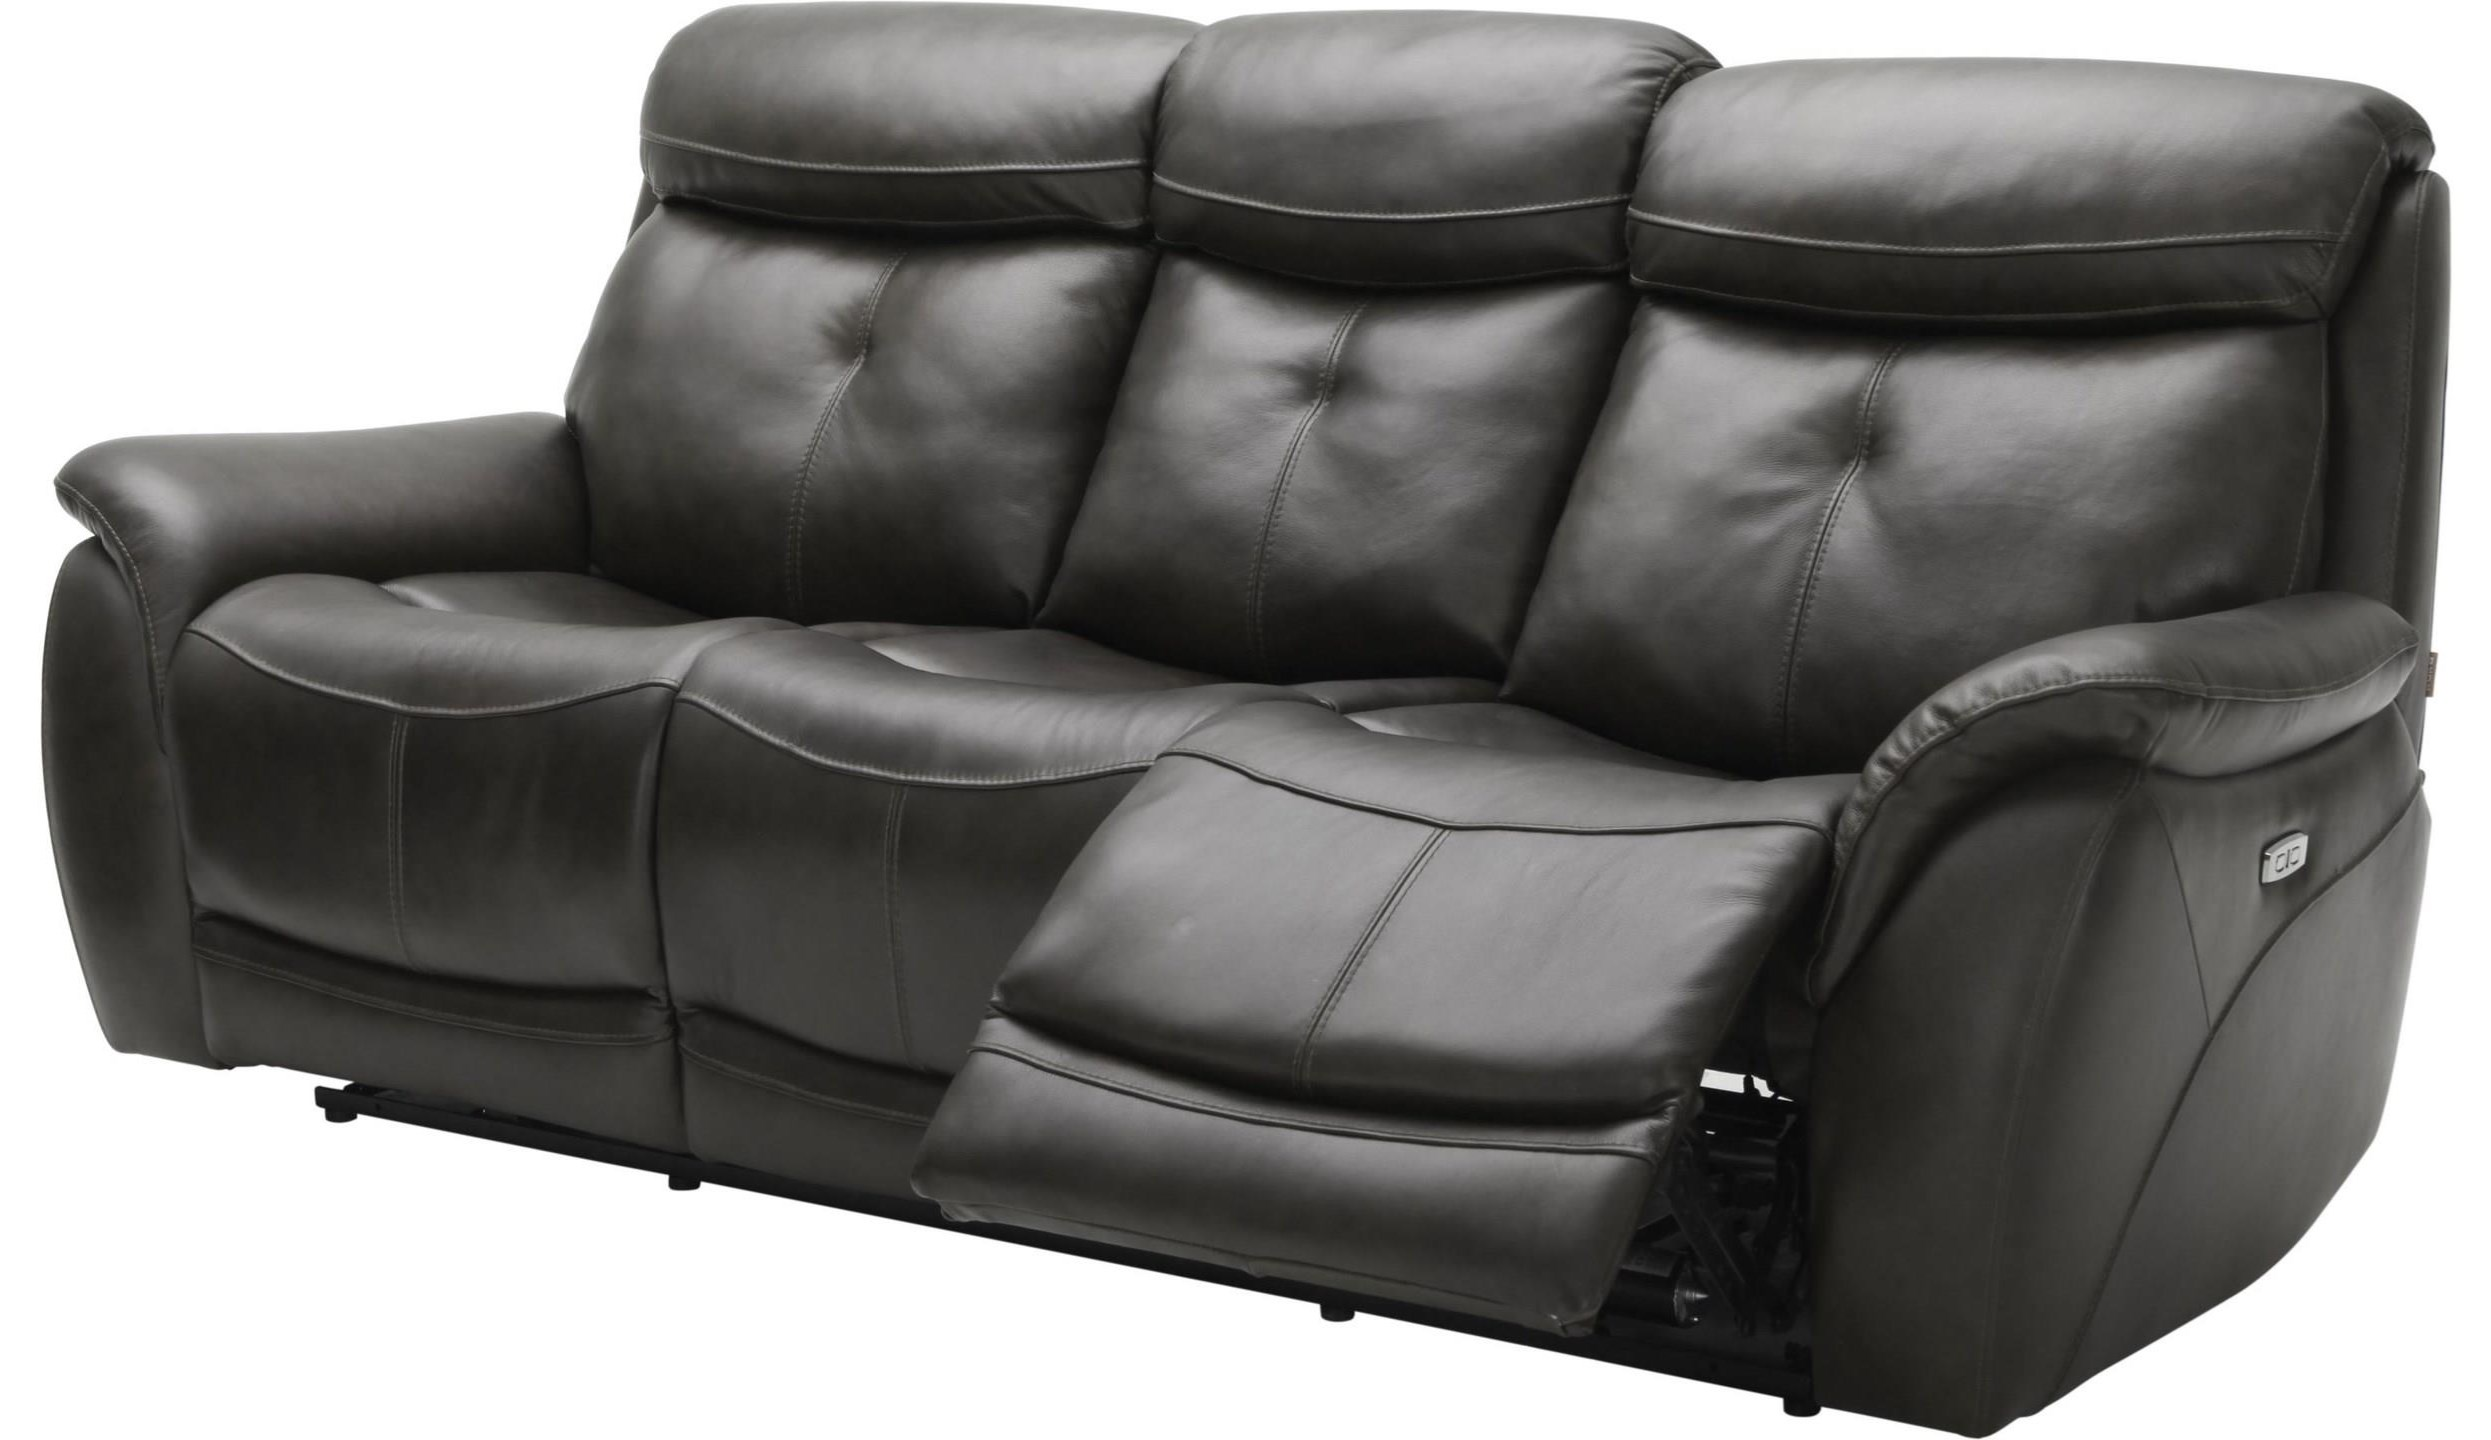 Largos  PWR Reclining Leather Sofa w/ PWR Headrest by K.C. at Walker's Furniture